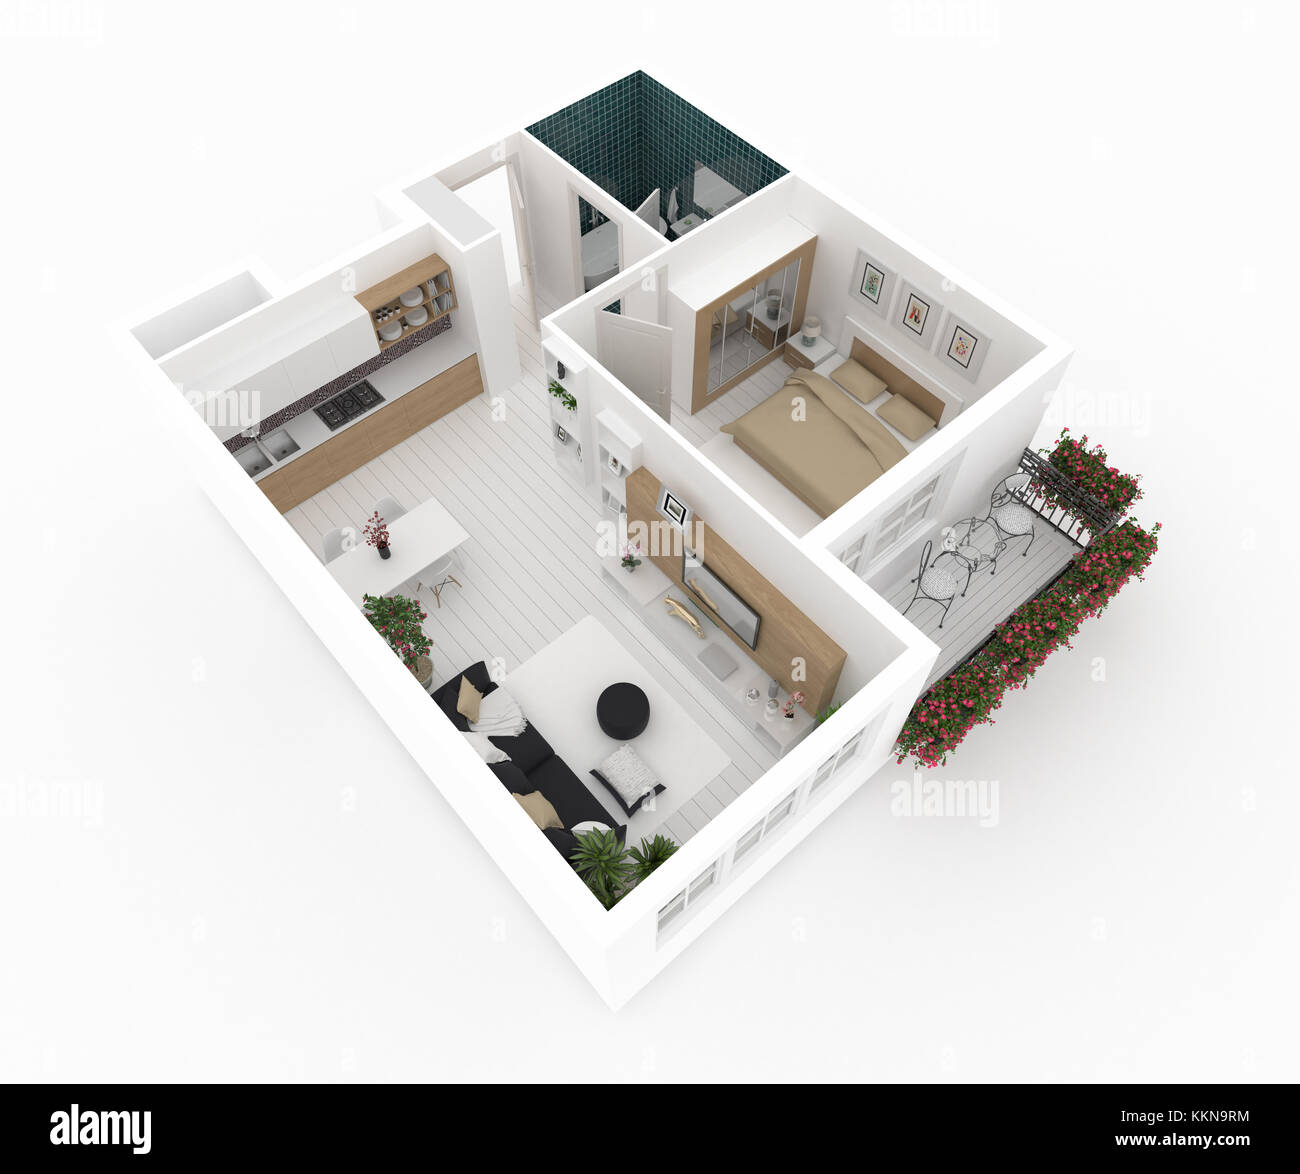 Plan of furnished home apartment - Stock Image